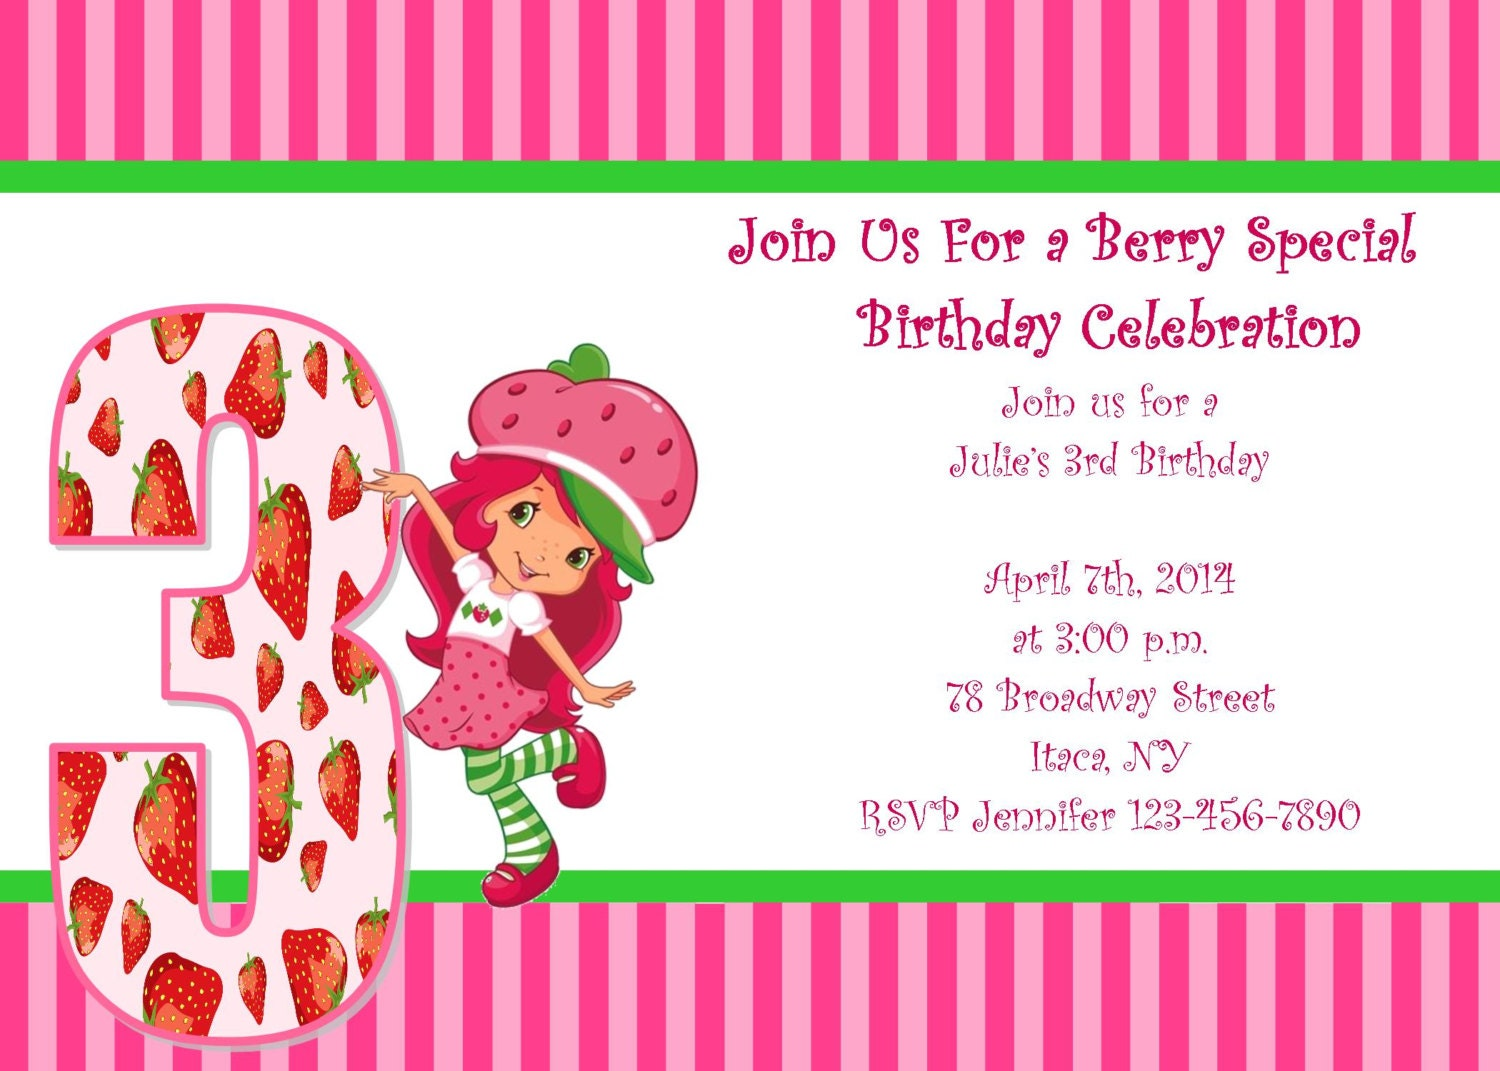 Strawberry Shortcake Invitation with awesome invitation example